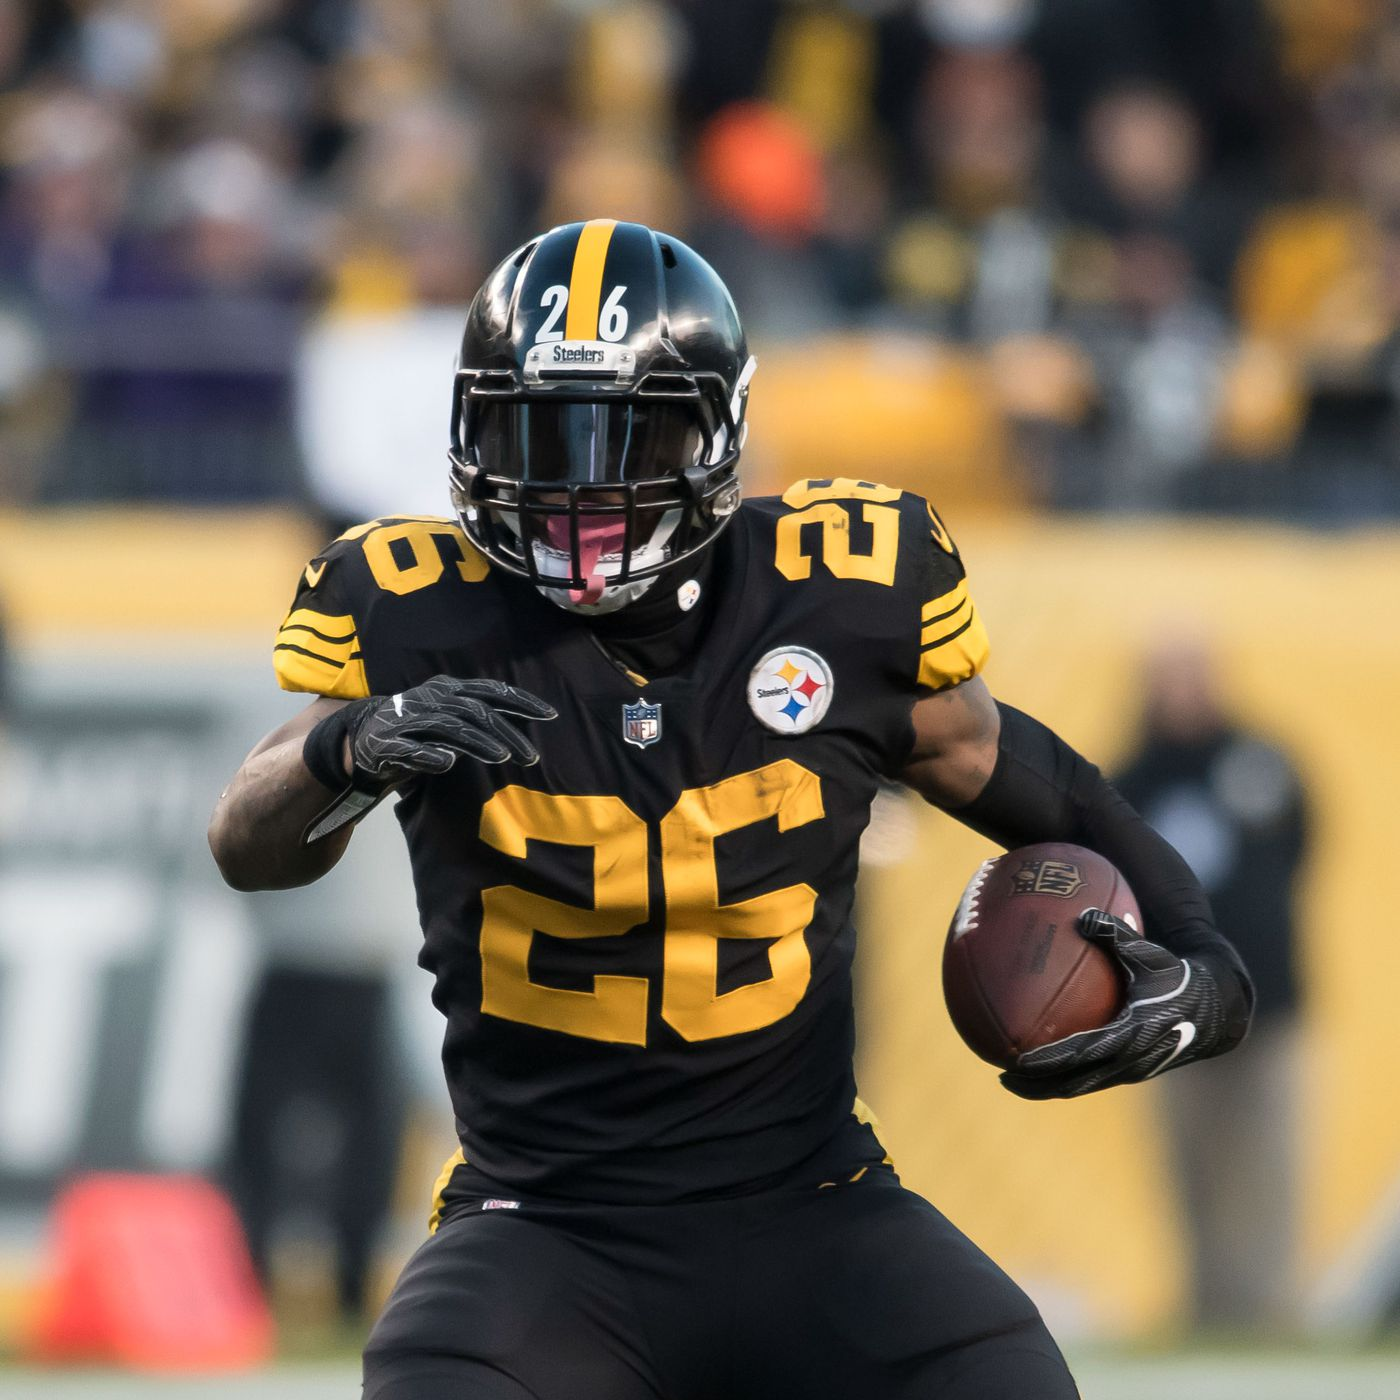 cf88f6b59ae91 A Steelers uniform change could be just what the doctor ordered ...